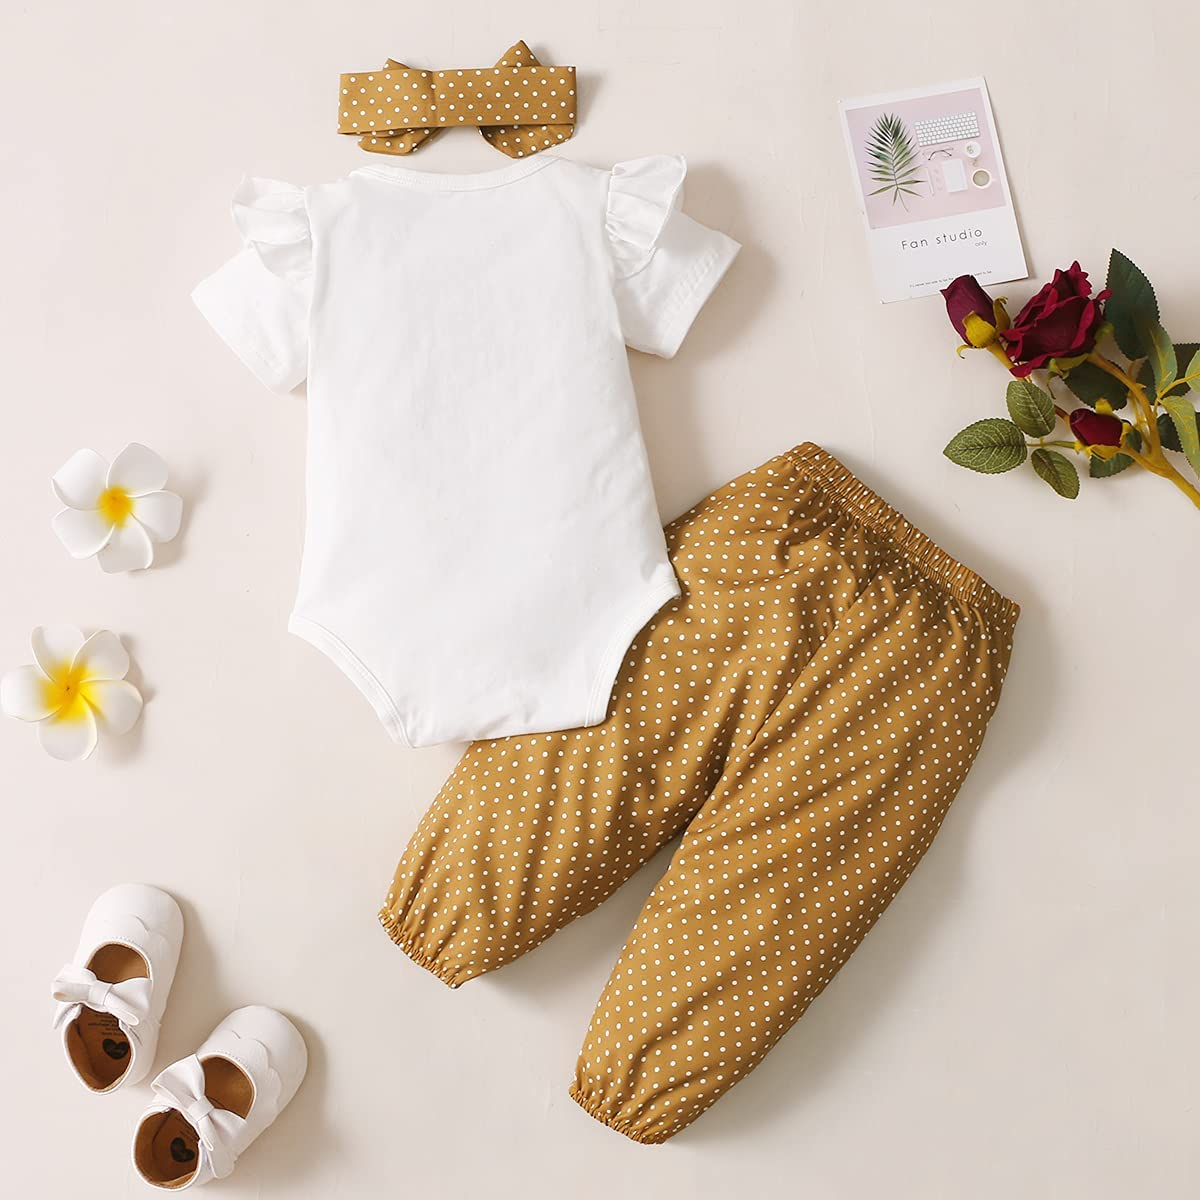 Baby Girl Clothes,Newborn Baby Girl Outfit and Headband 3 PCS Set Short Sleeve Floral Jumpsuit Romper Short Pants for Summer